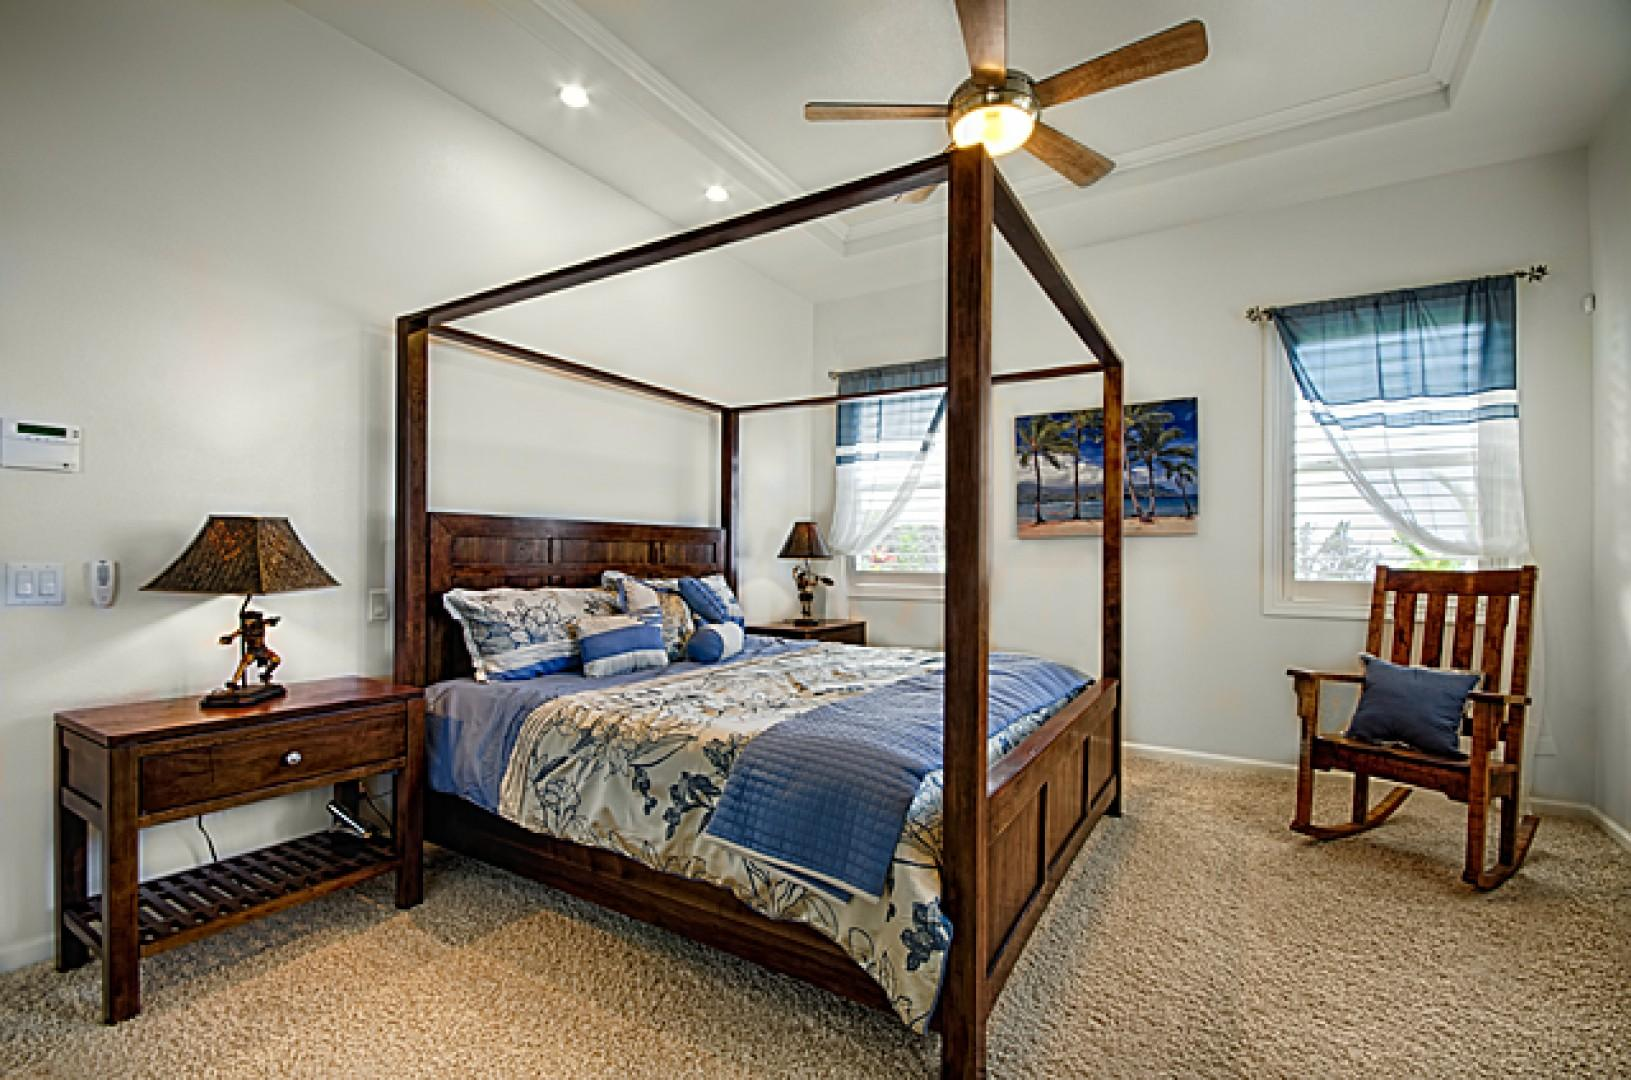 Incredibly spacious master bedroom with luxurious king size bed.